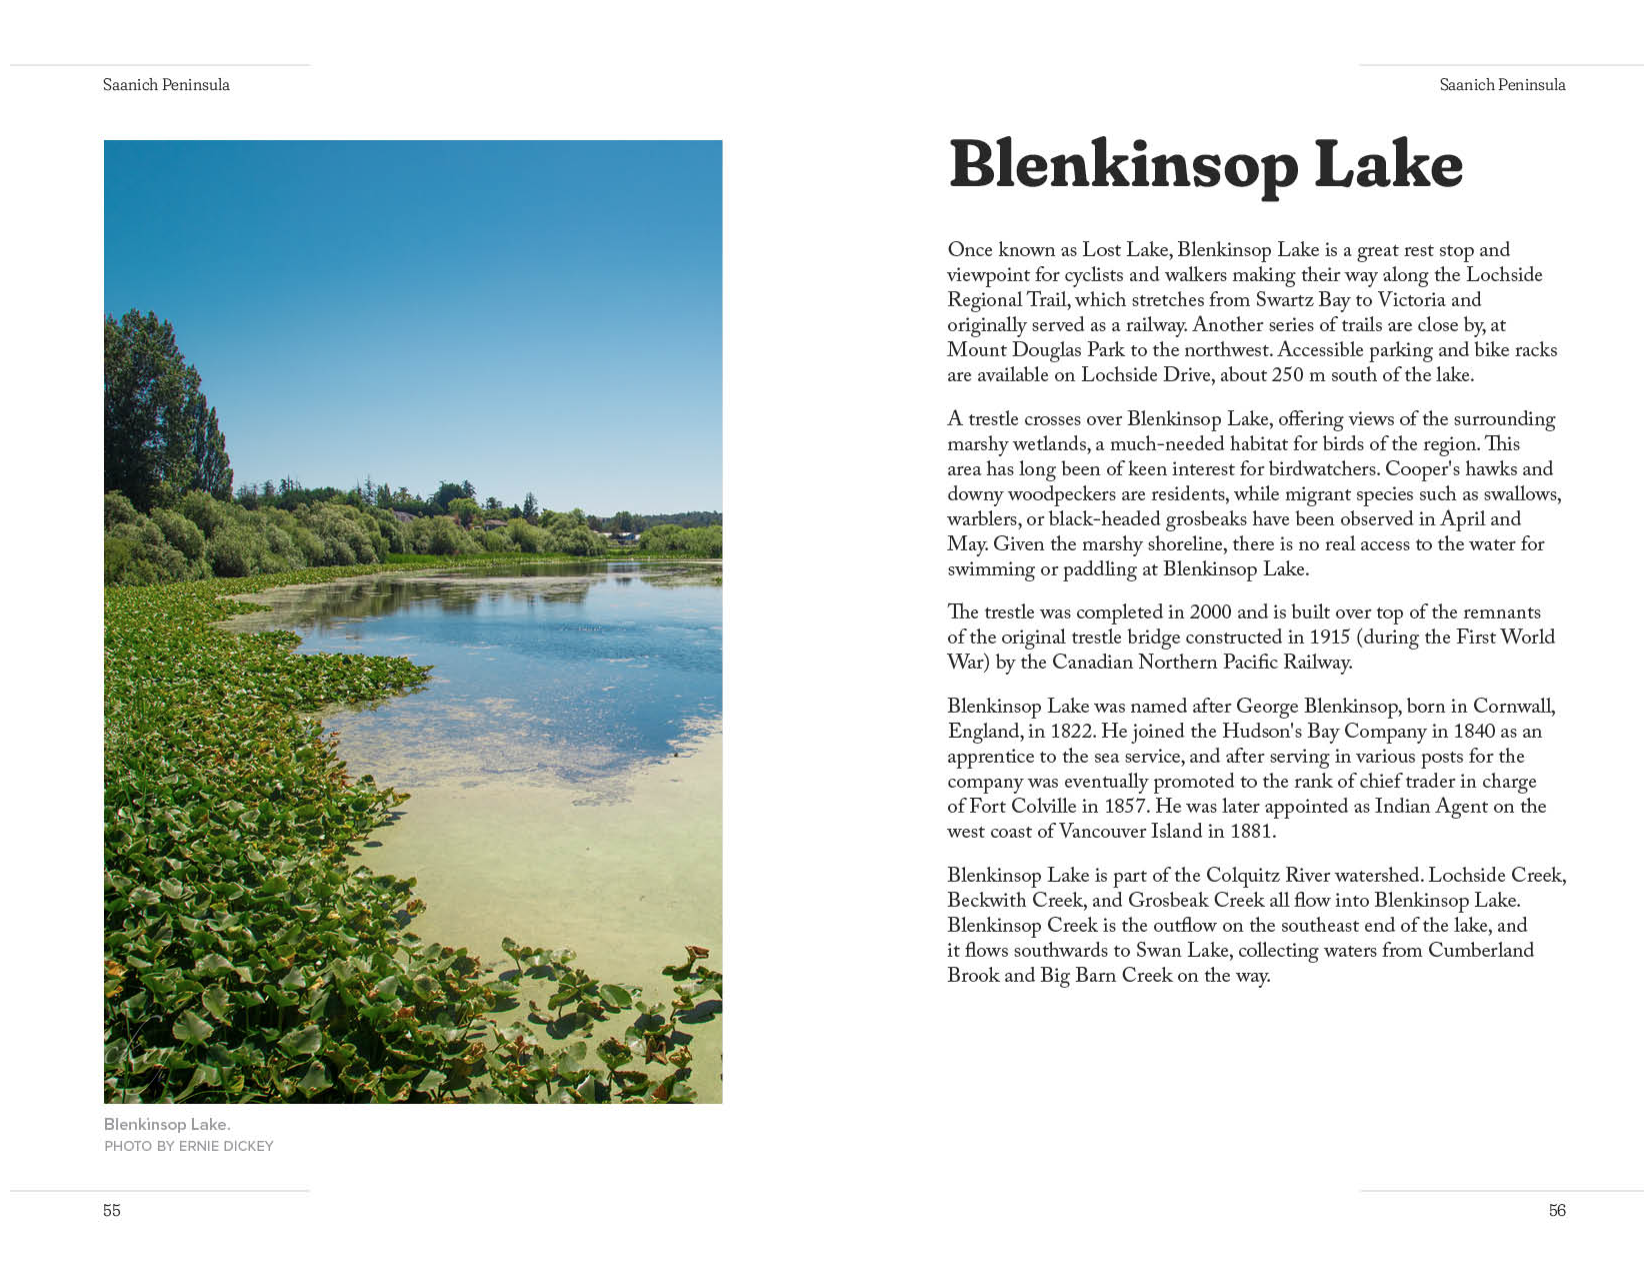 Spread showing pages for Blenkinsop Lake.